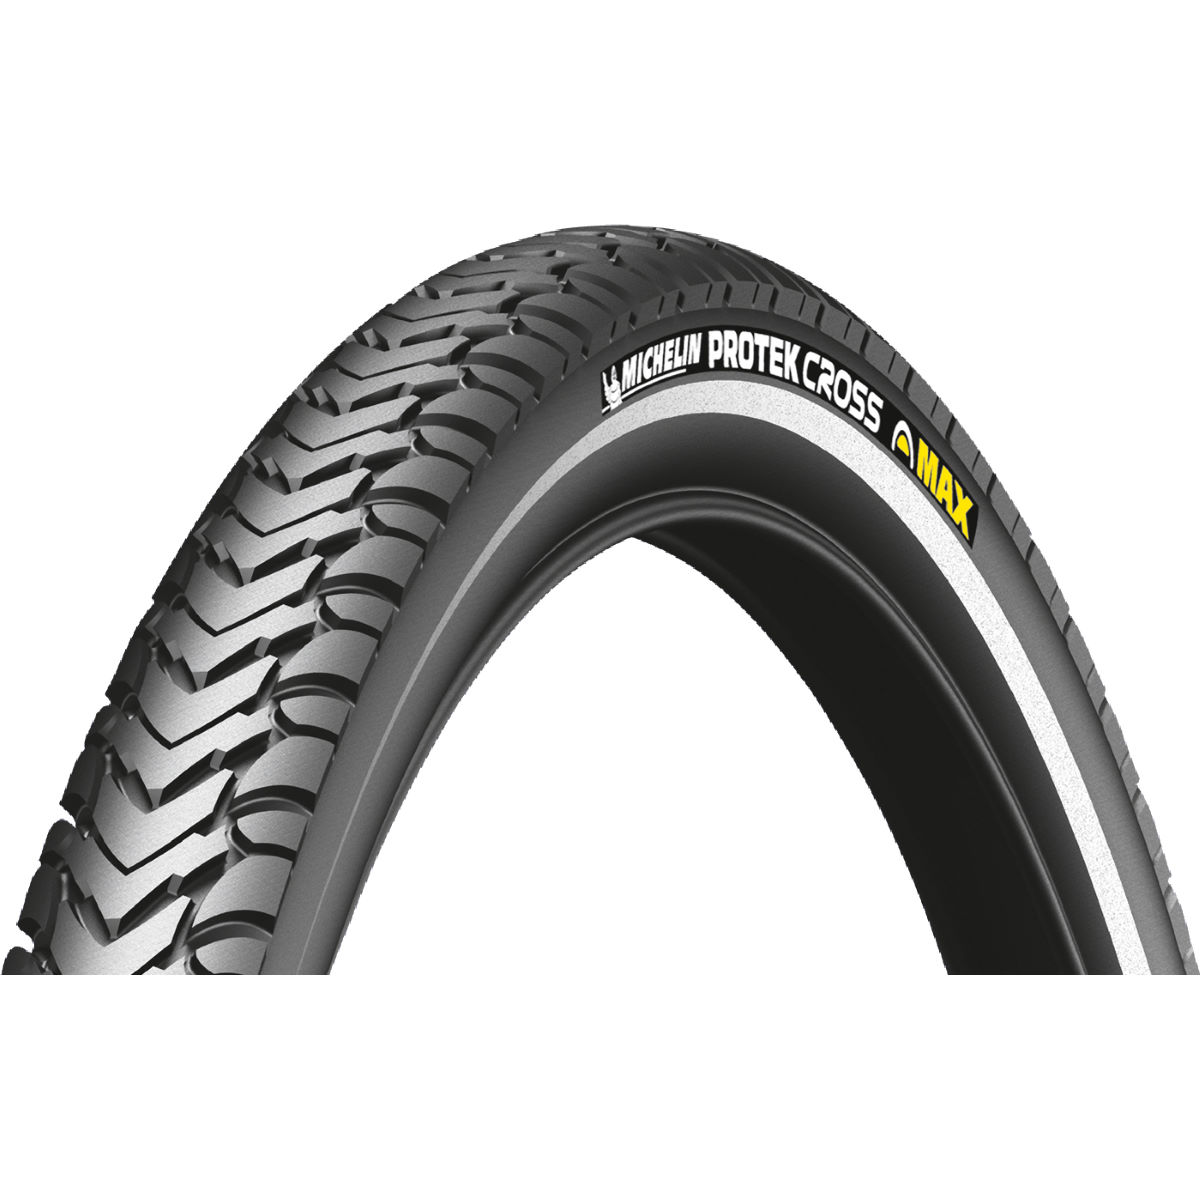 Pneu cyclotourisme Michelin ProTek Cross Max - 700 x 35c Reflective